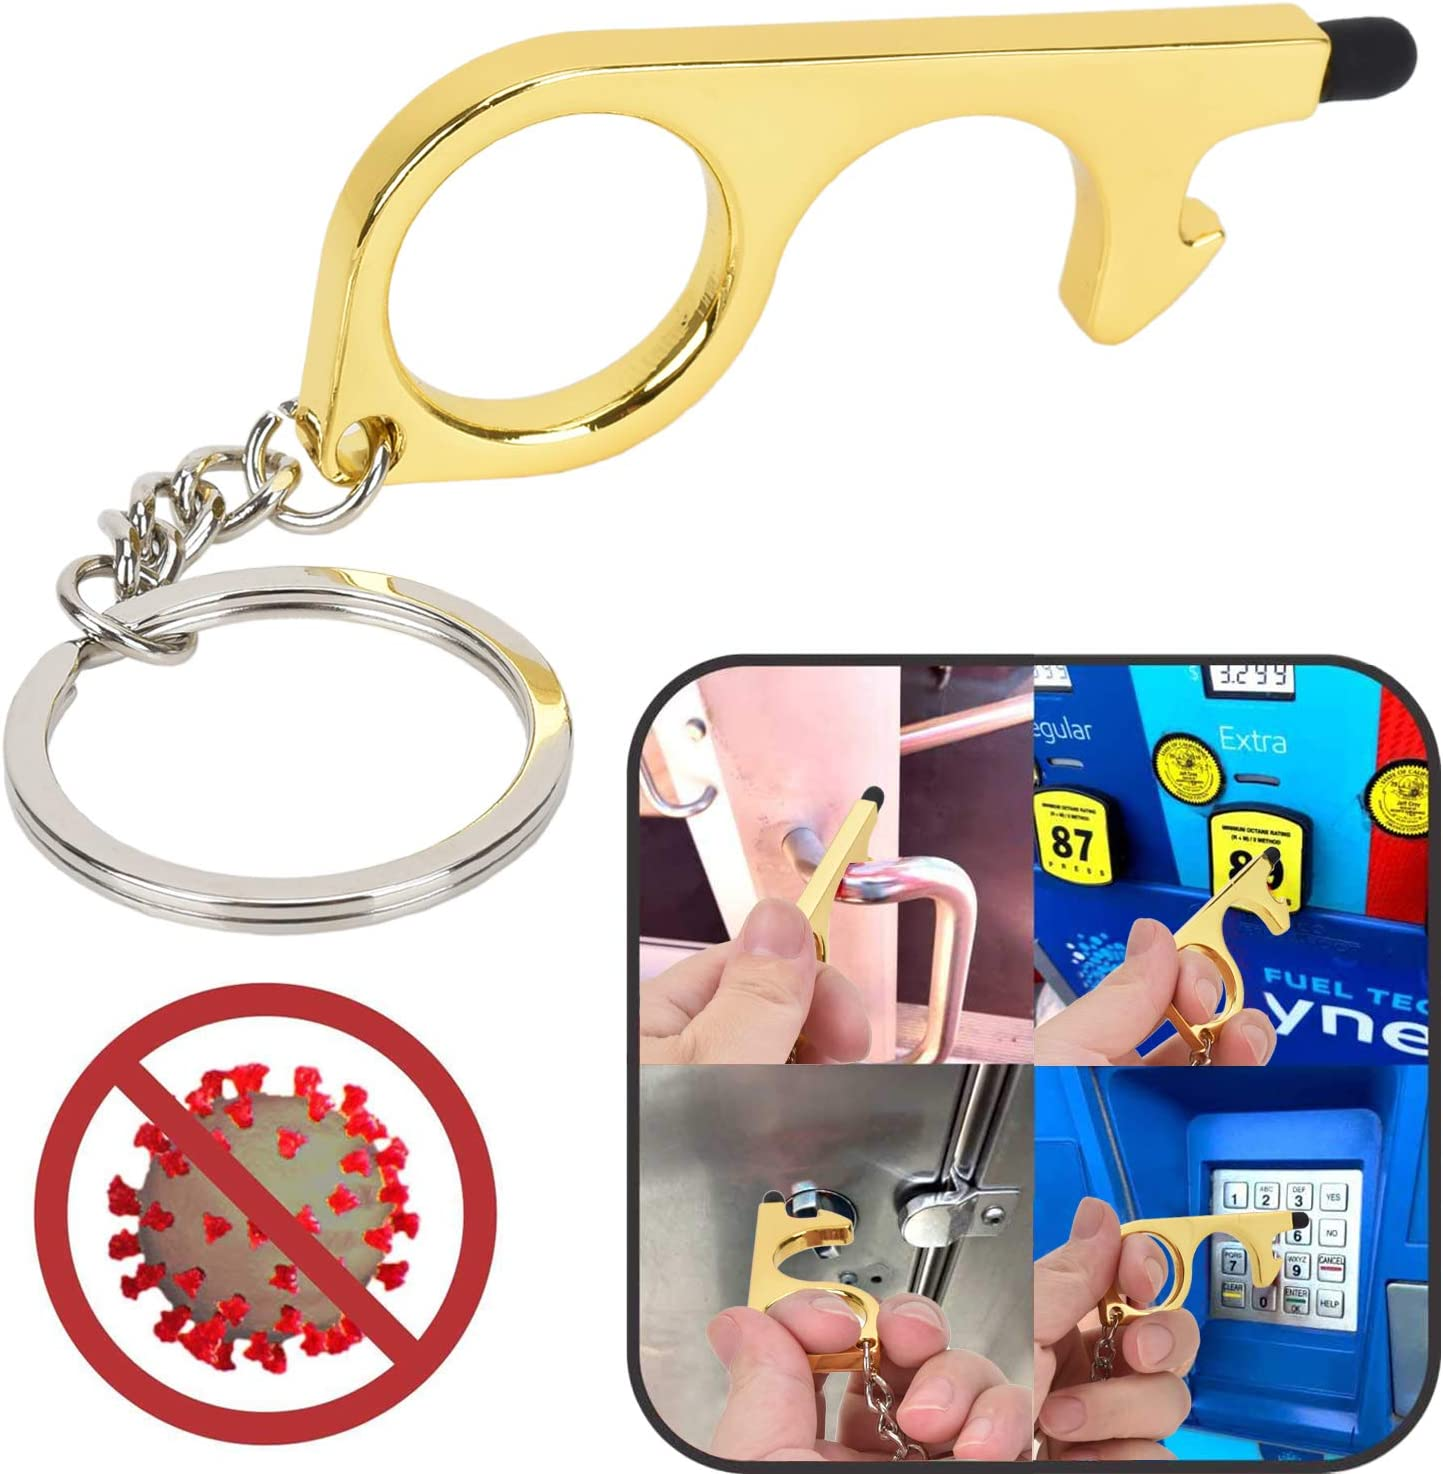 All Avoiding Germs by Working on Touchscreens /& Signature Pads Carriying Shopping Bags Willingood Portable Door Opener Tool /& No Touch Hand Tool with Key Ring